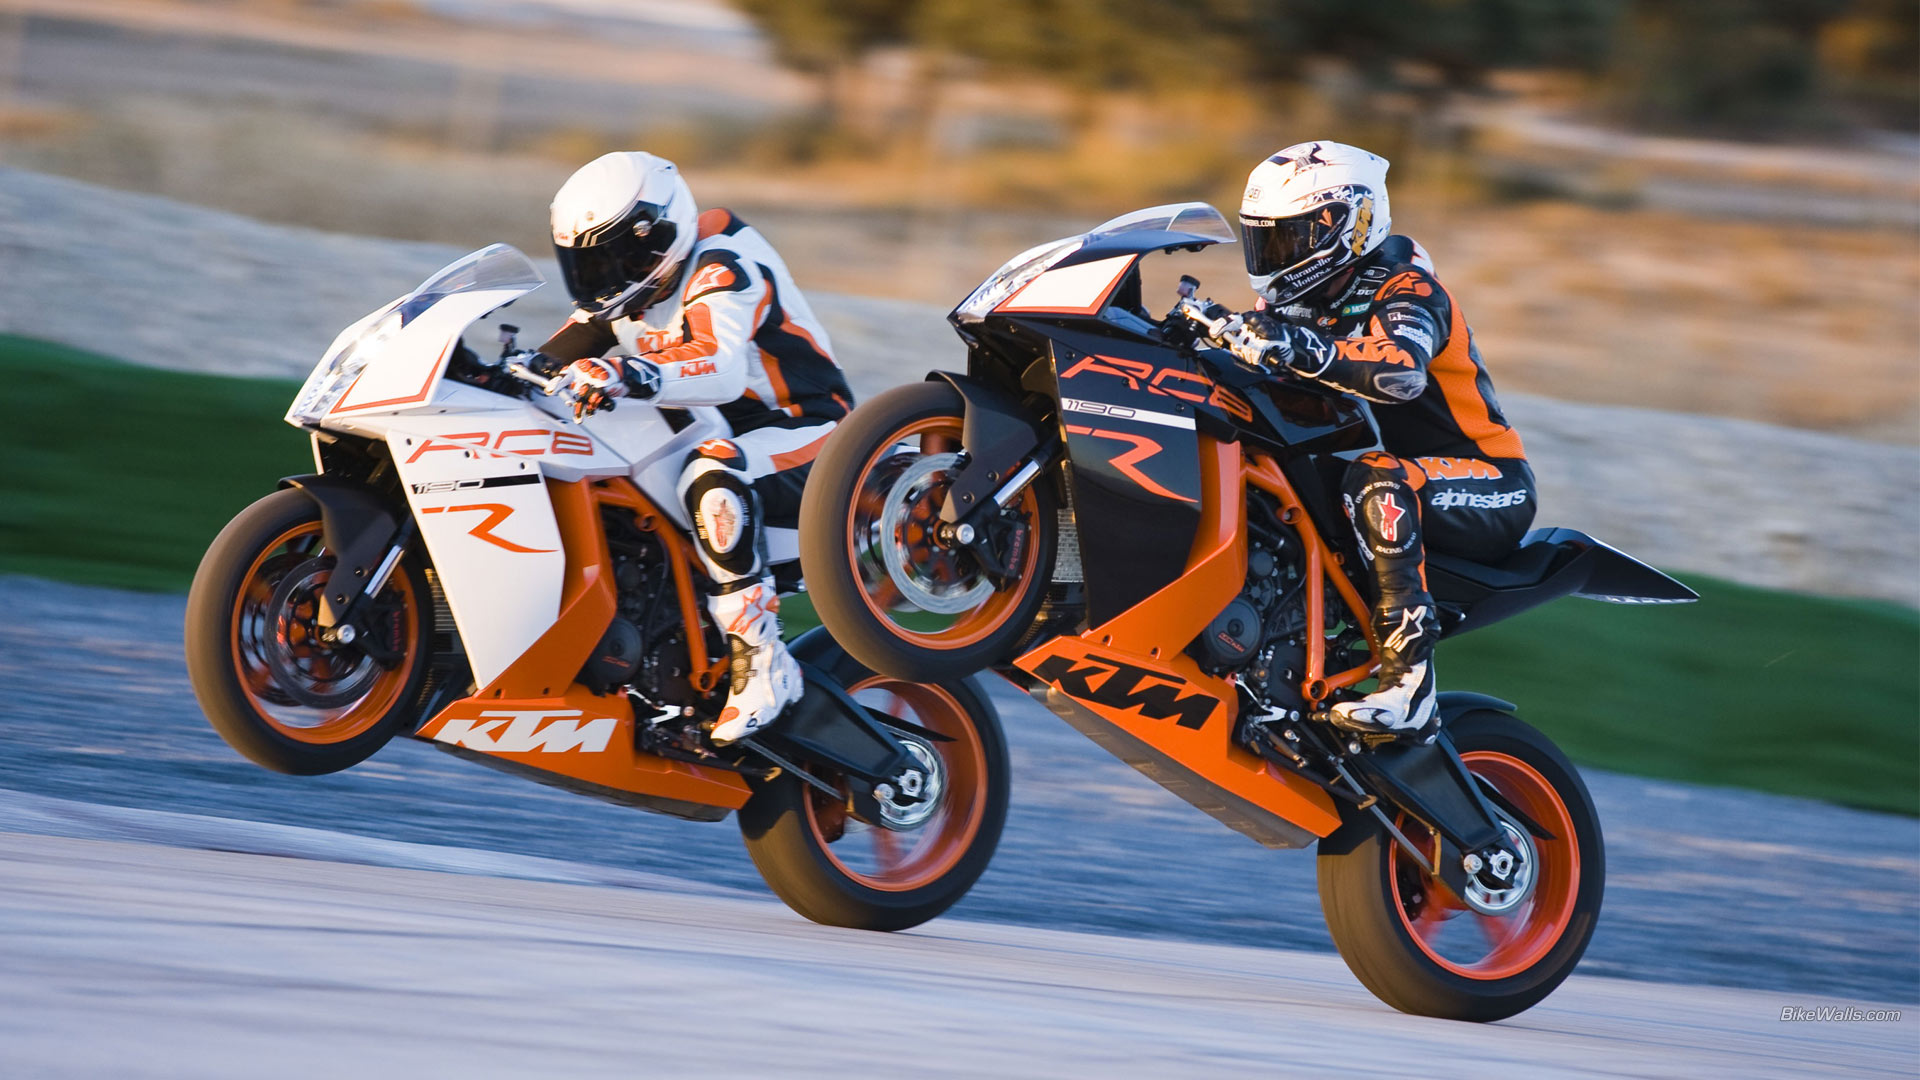 KTM RC8 R 1920 x 1080 wallpaper 1920x1080